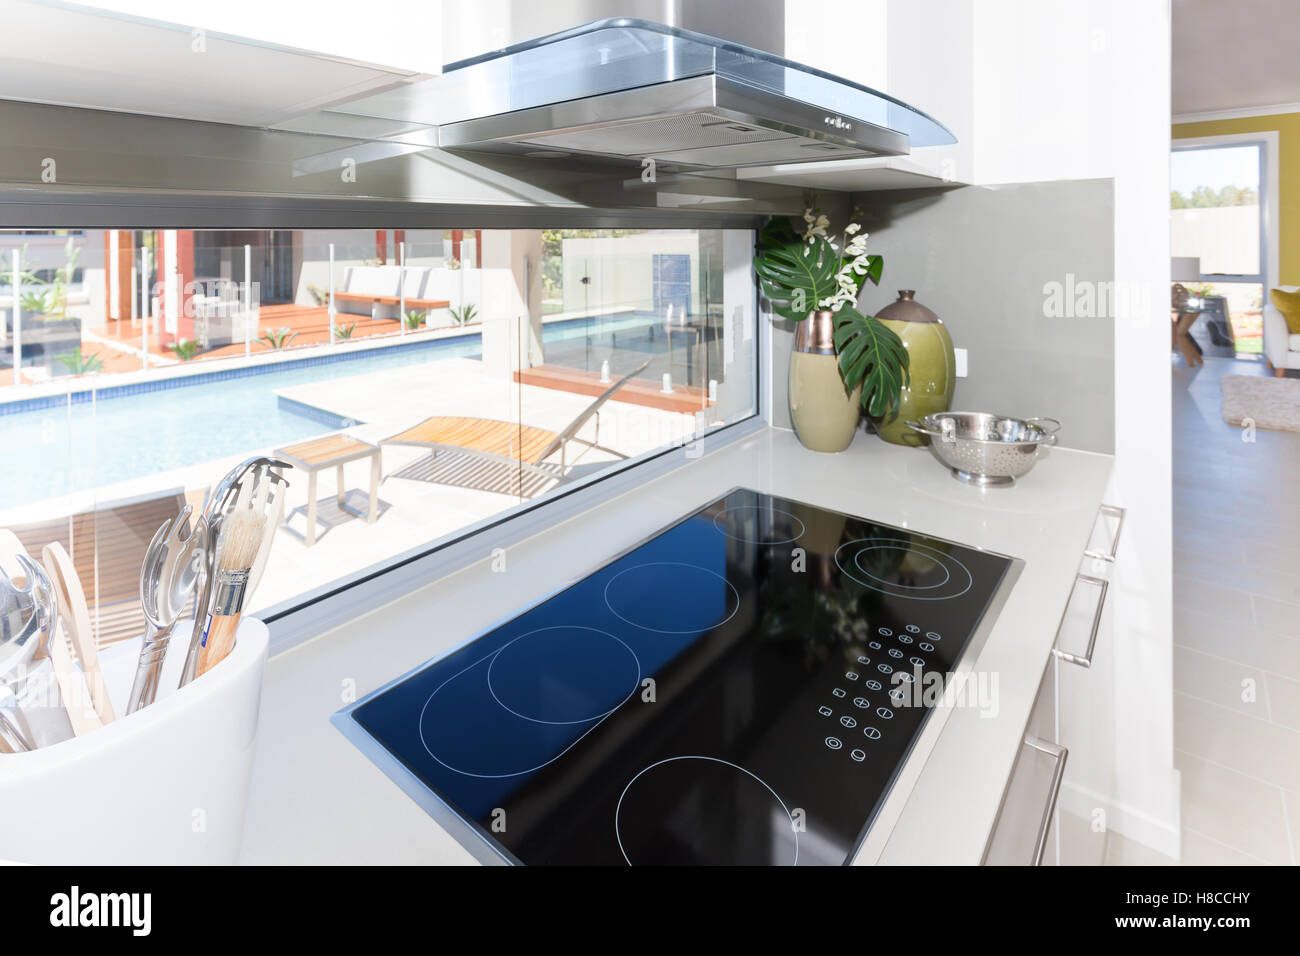 Modern stove with ceramic tech besides spoons near the window in the kitchen, view of swimming pool through the - Stock Image